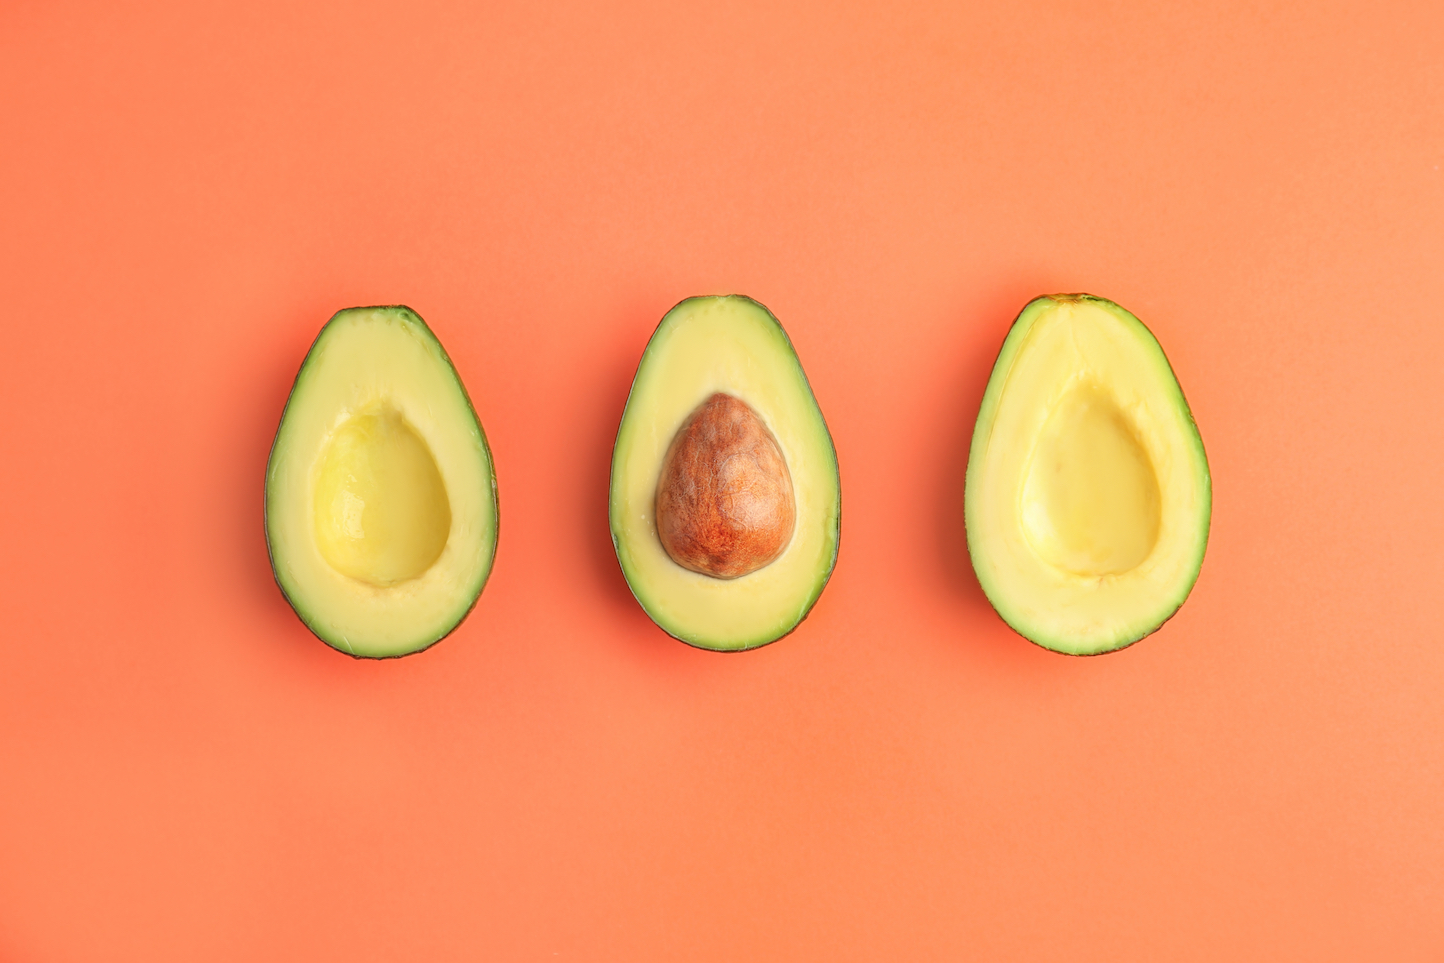 100% natural avocados - Hand Grown With Love